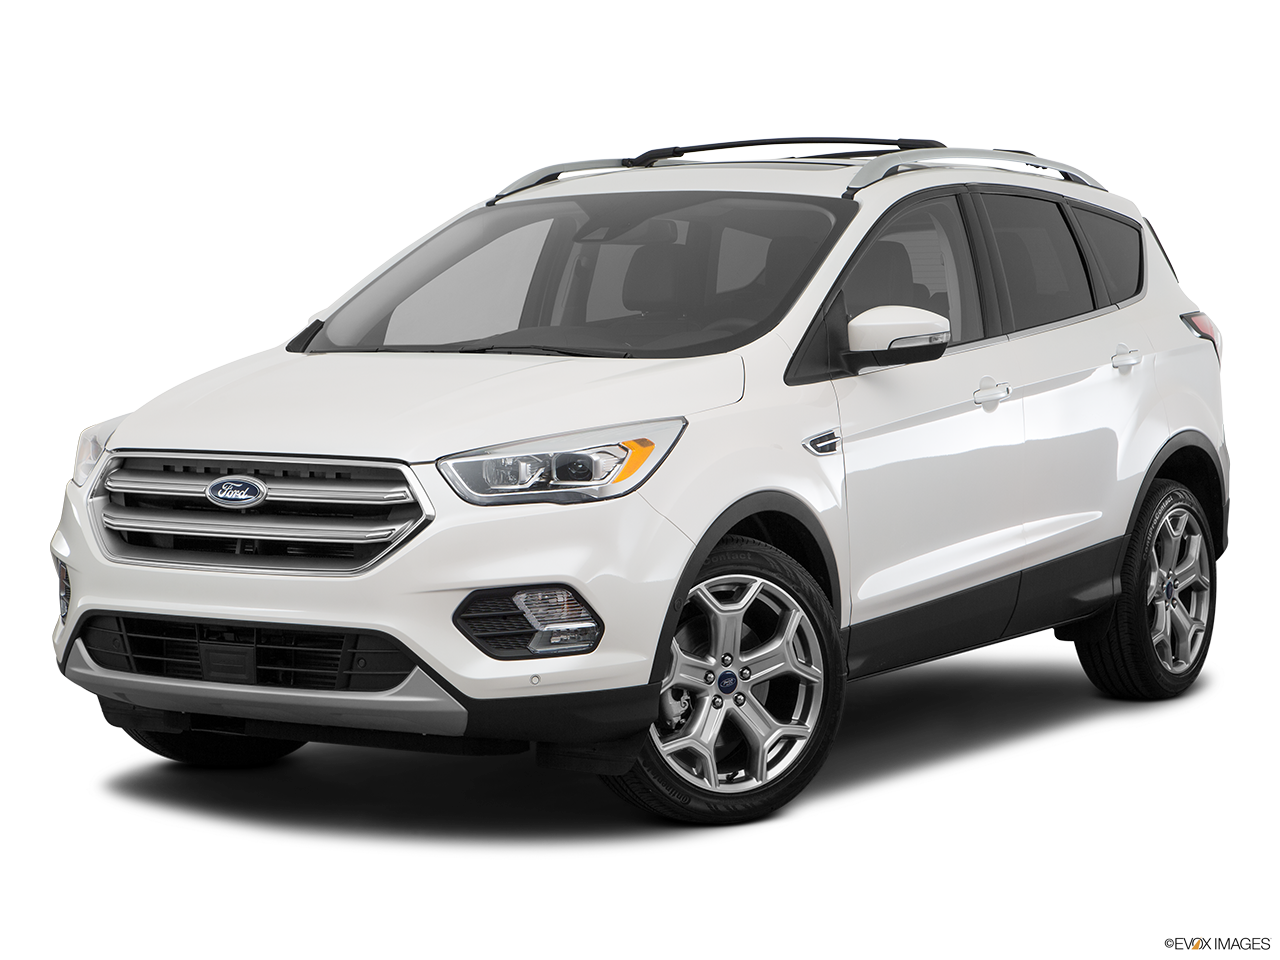 Test Drive A 2017 Ford Escape at Galpin Ford in Los Angeles